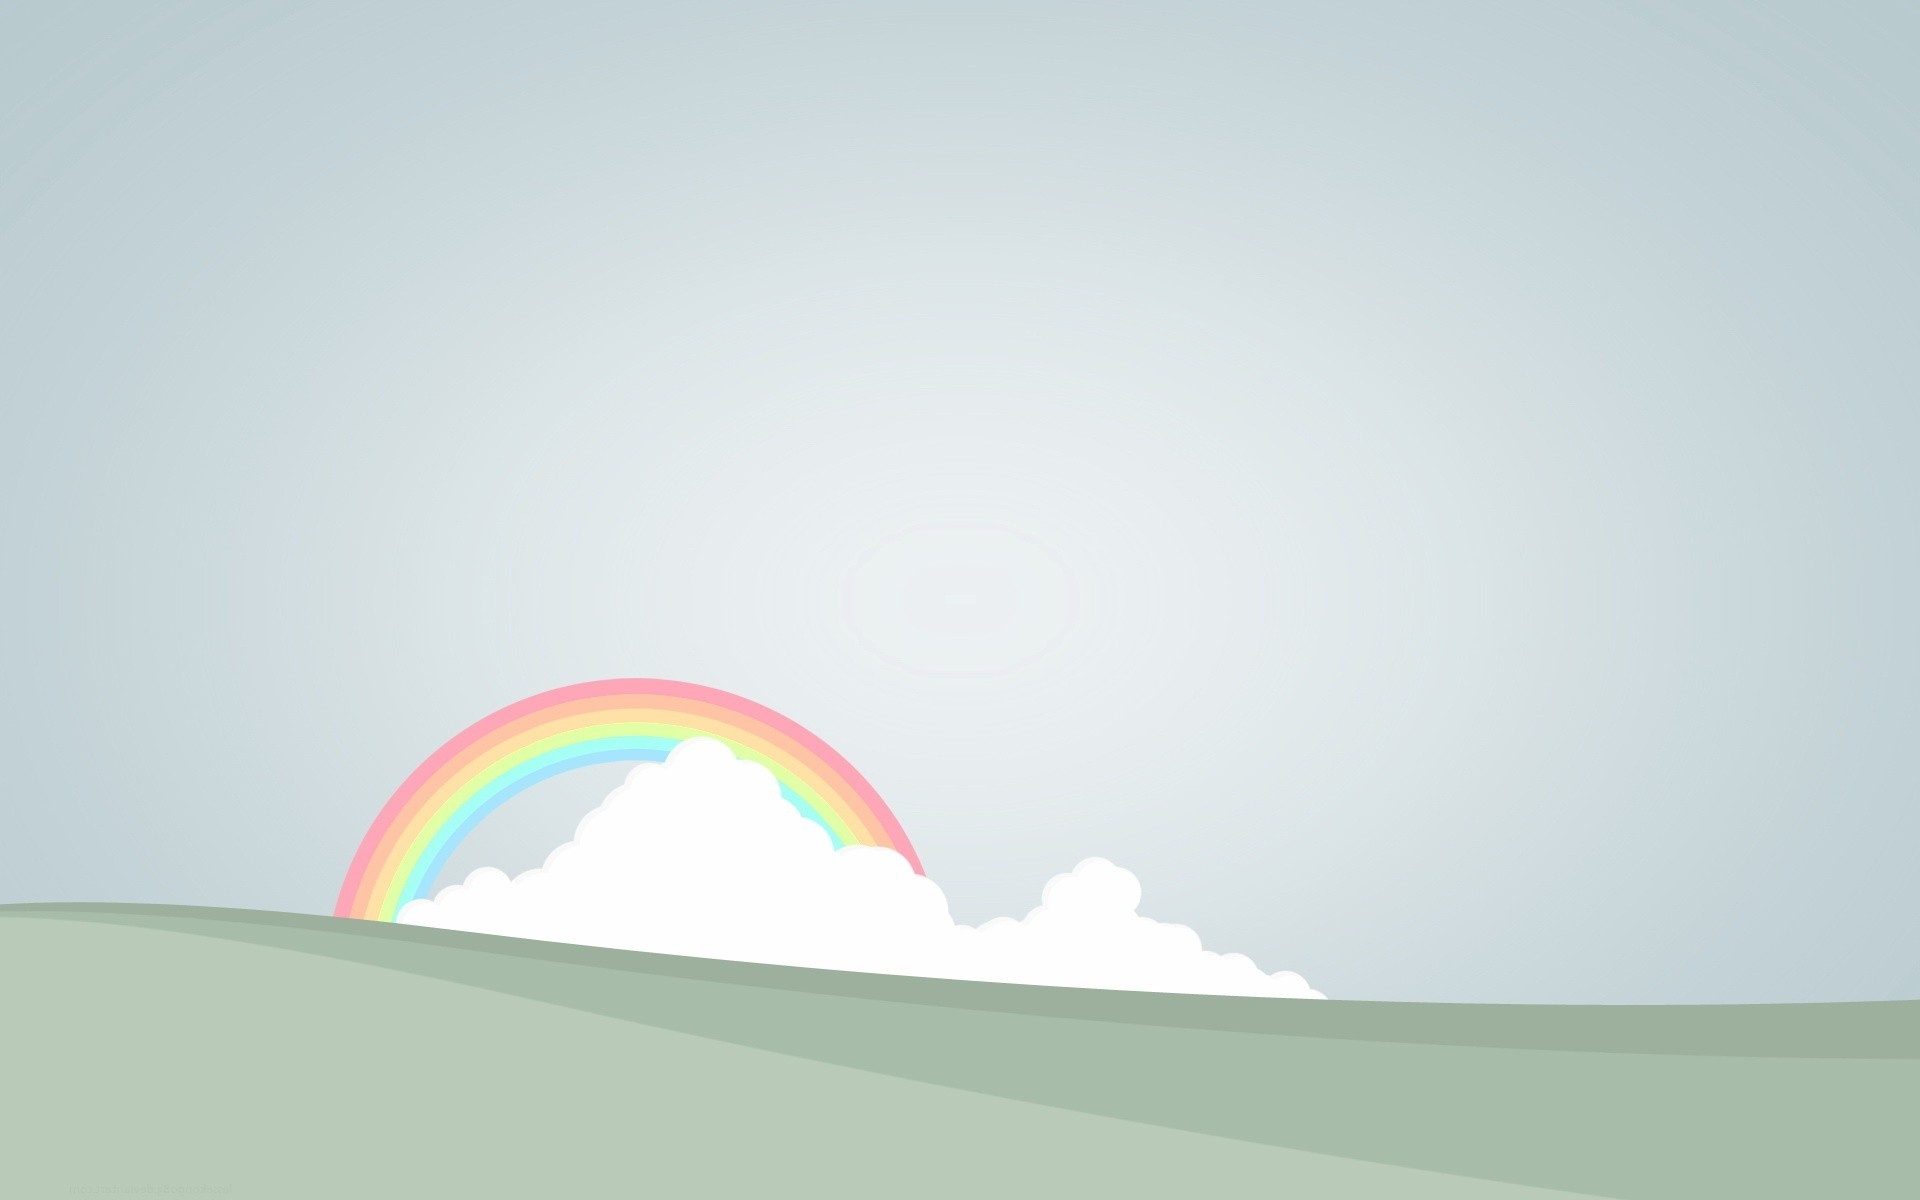 Rainbow behind the clouds